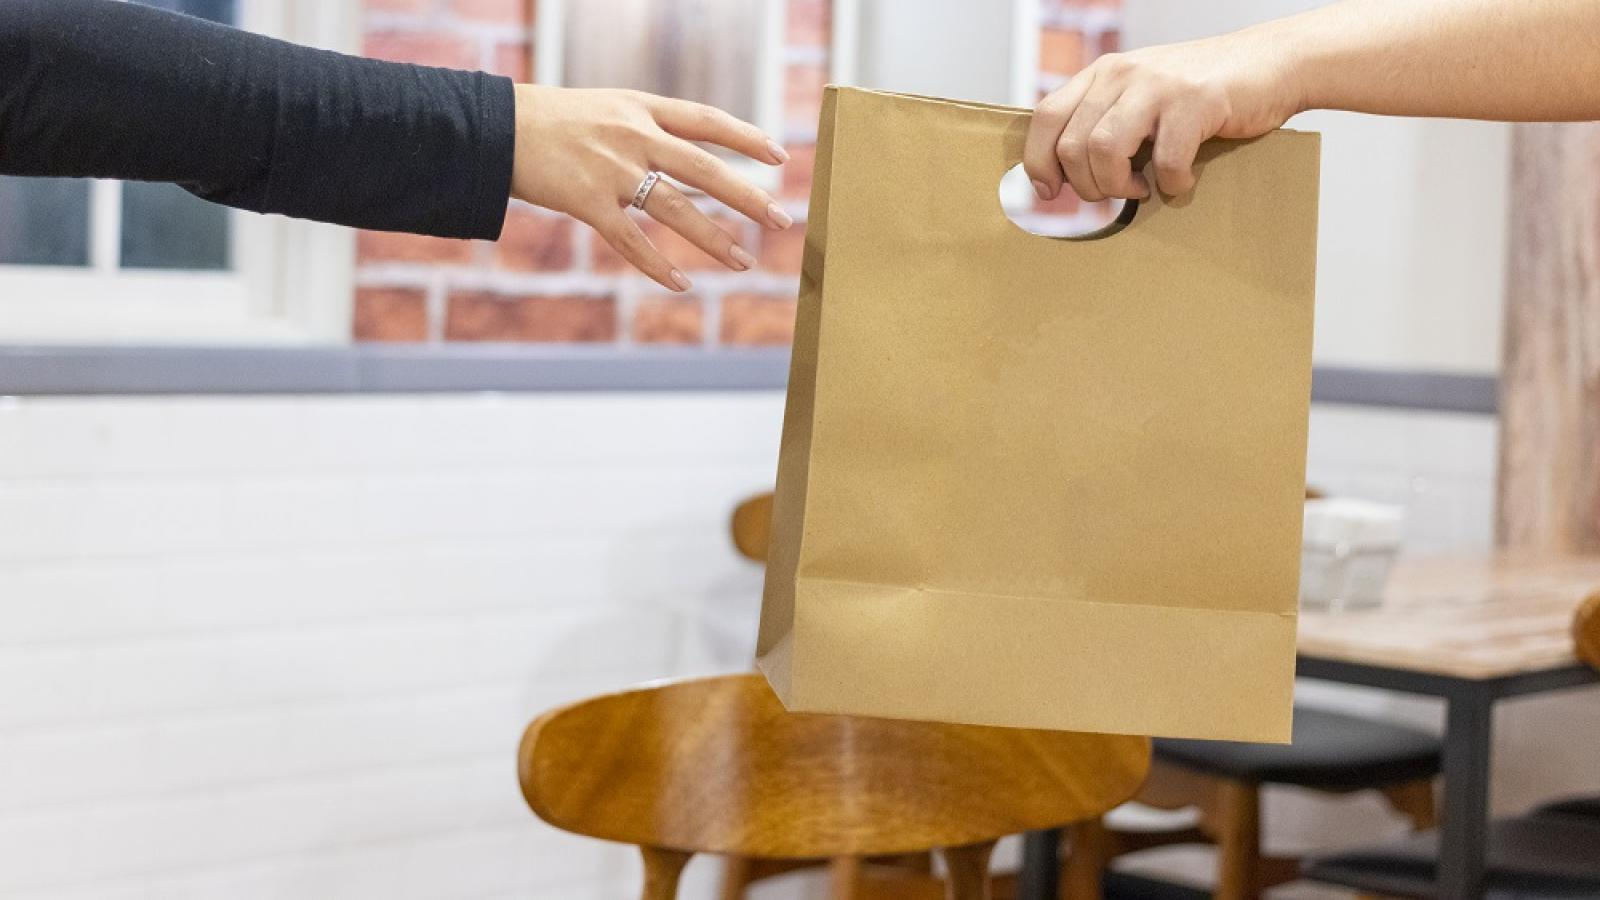 MoPH urges to follow precautionary measures when using home delivery services